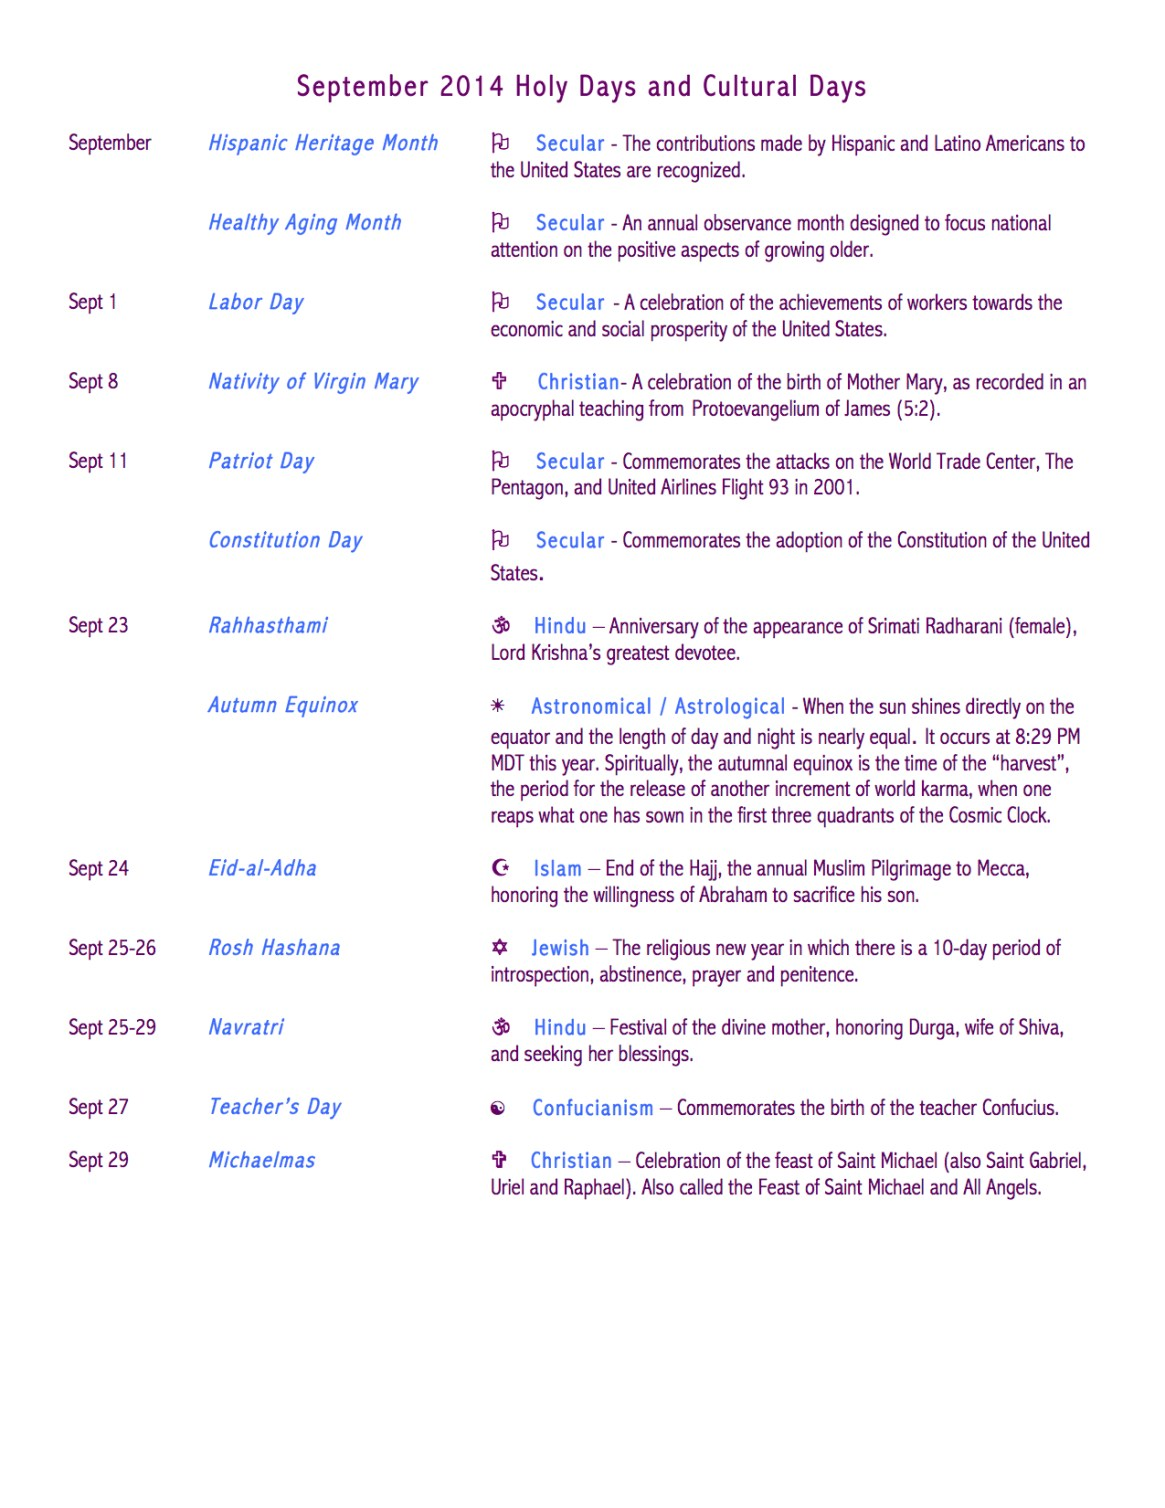 September 2014 Holy Days and Cultural Days